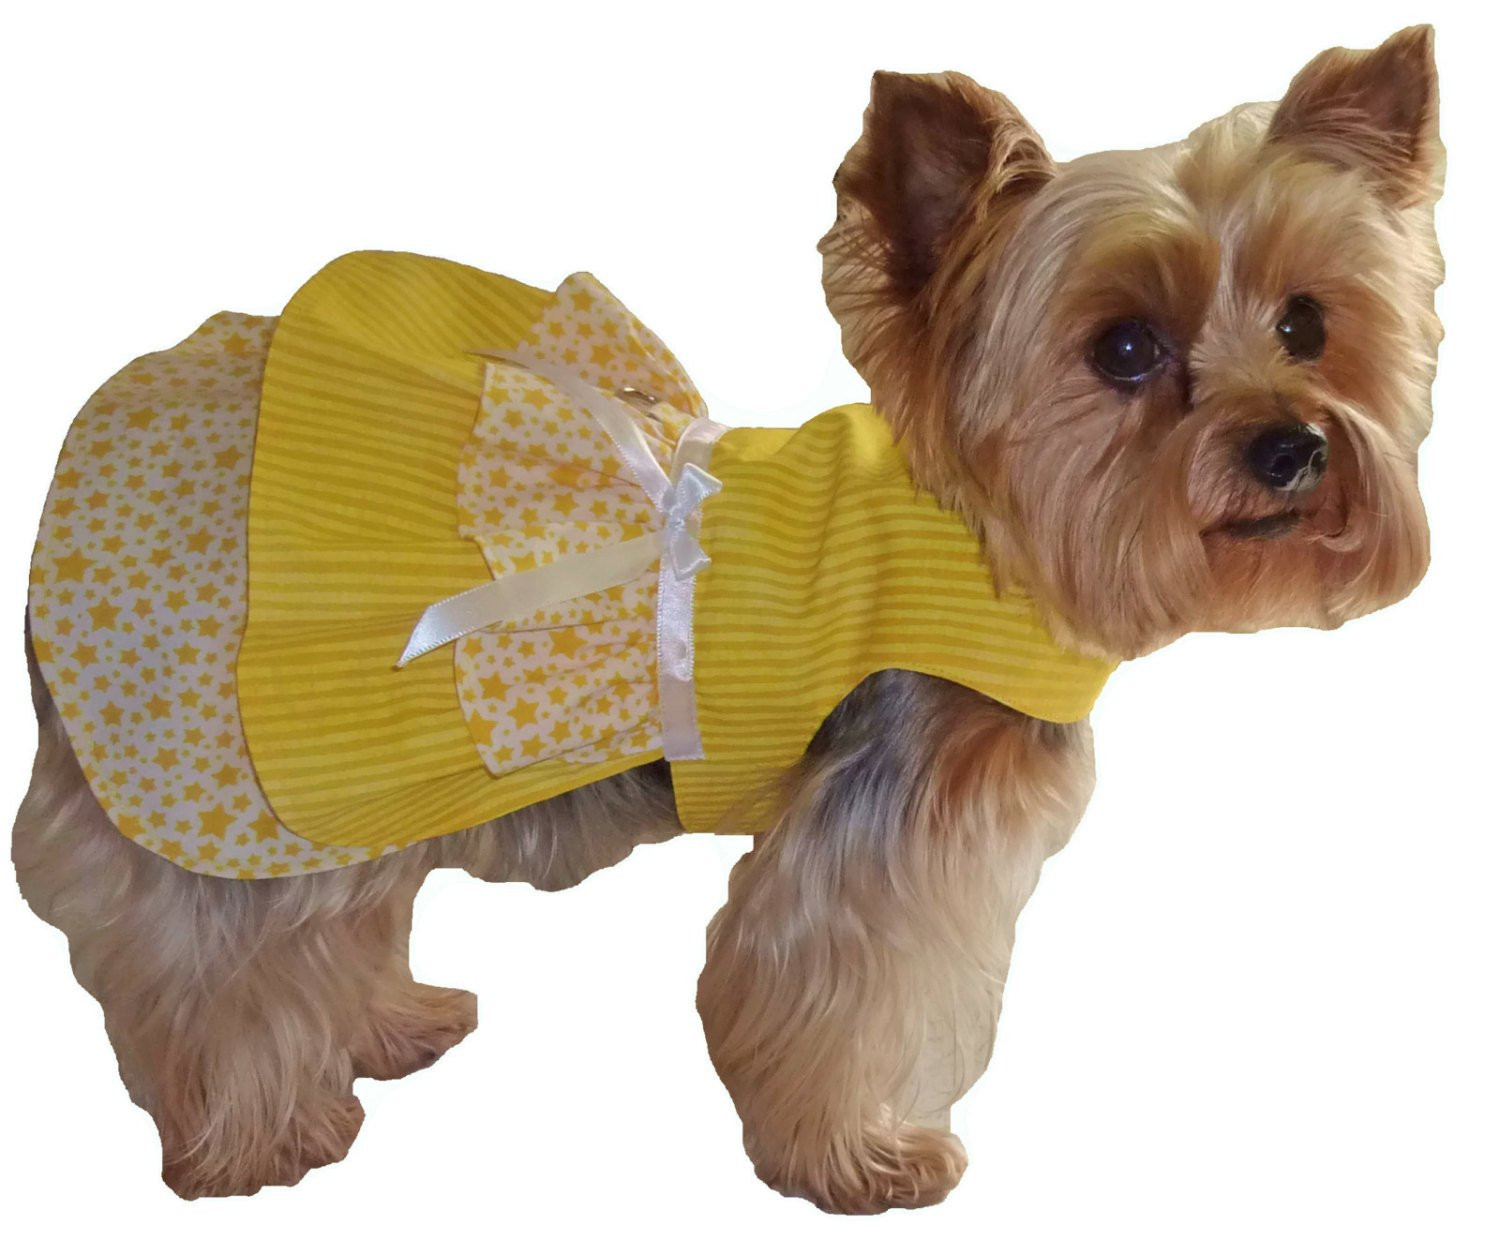 Dog Clothes Patterns New Small Dog Harness Coat Small Get Free Image About Wiring Of Innovative 46 Pics Dog Clothes Patterns